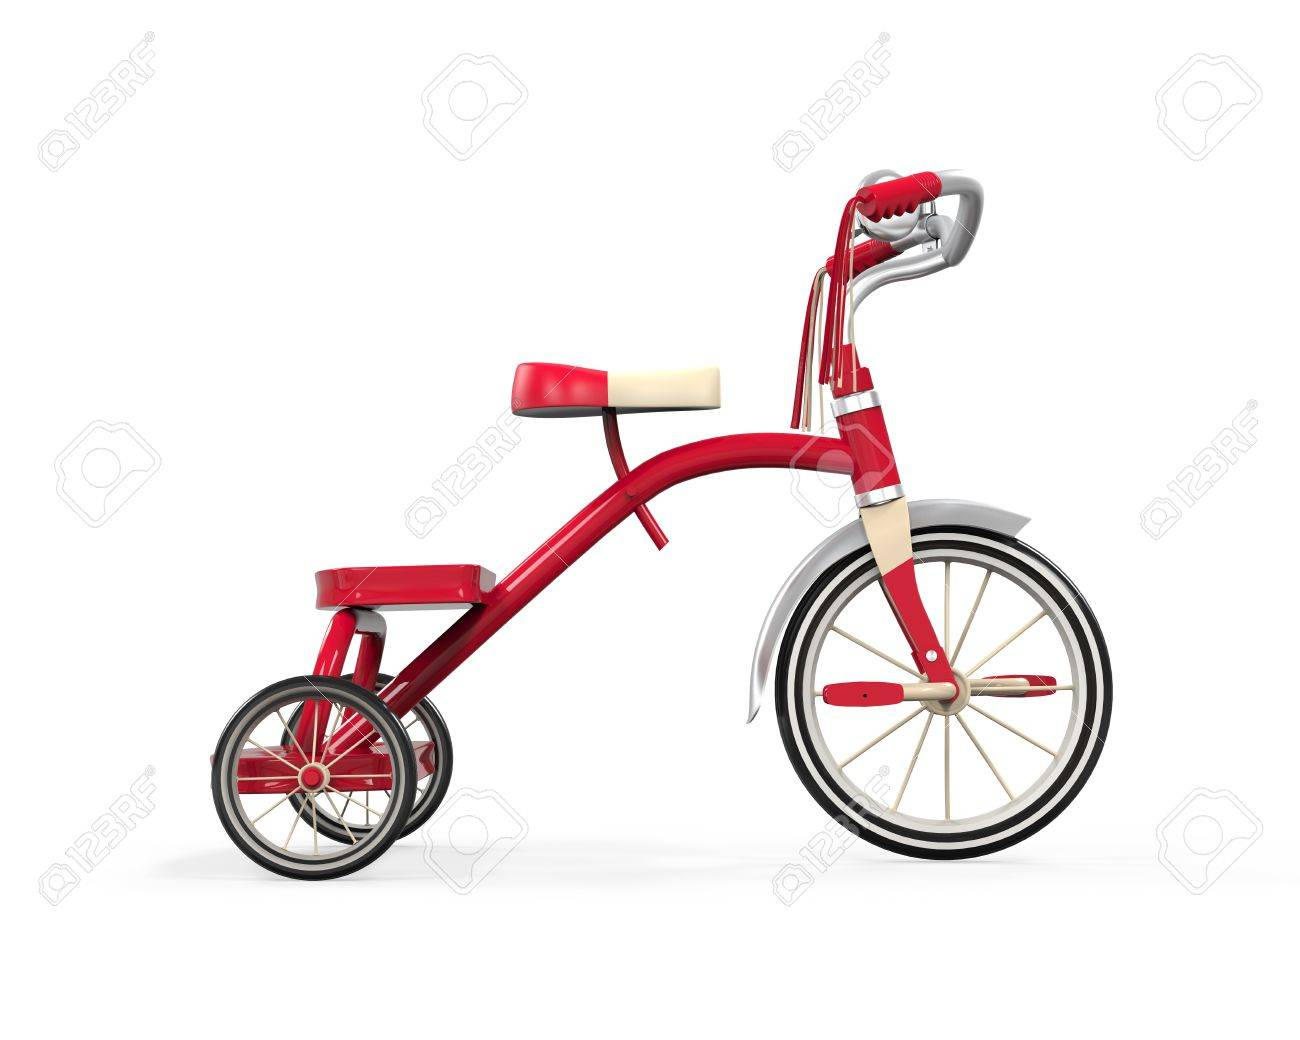 Kids Tricycle Isolated Stock Photo - 21701001